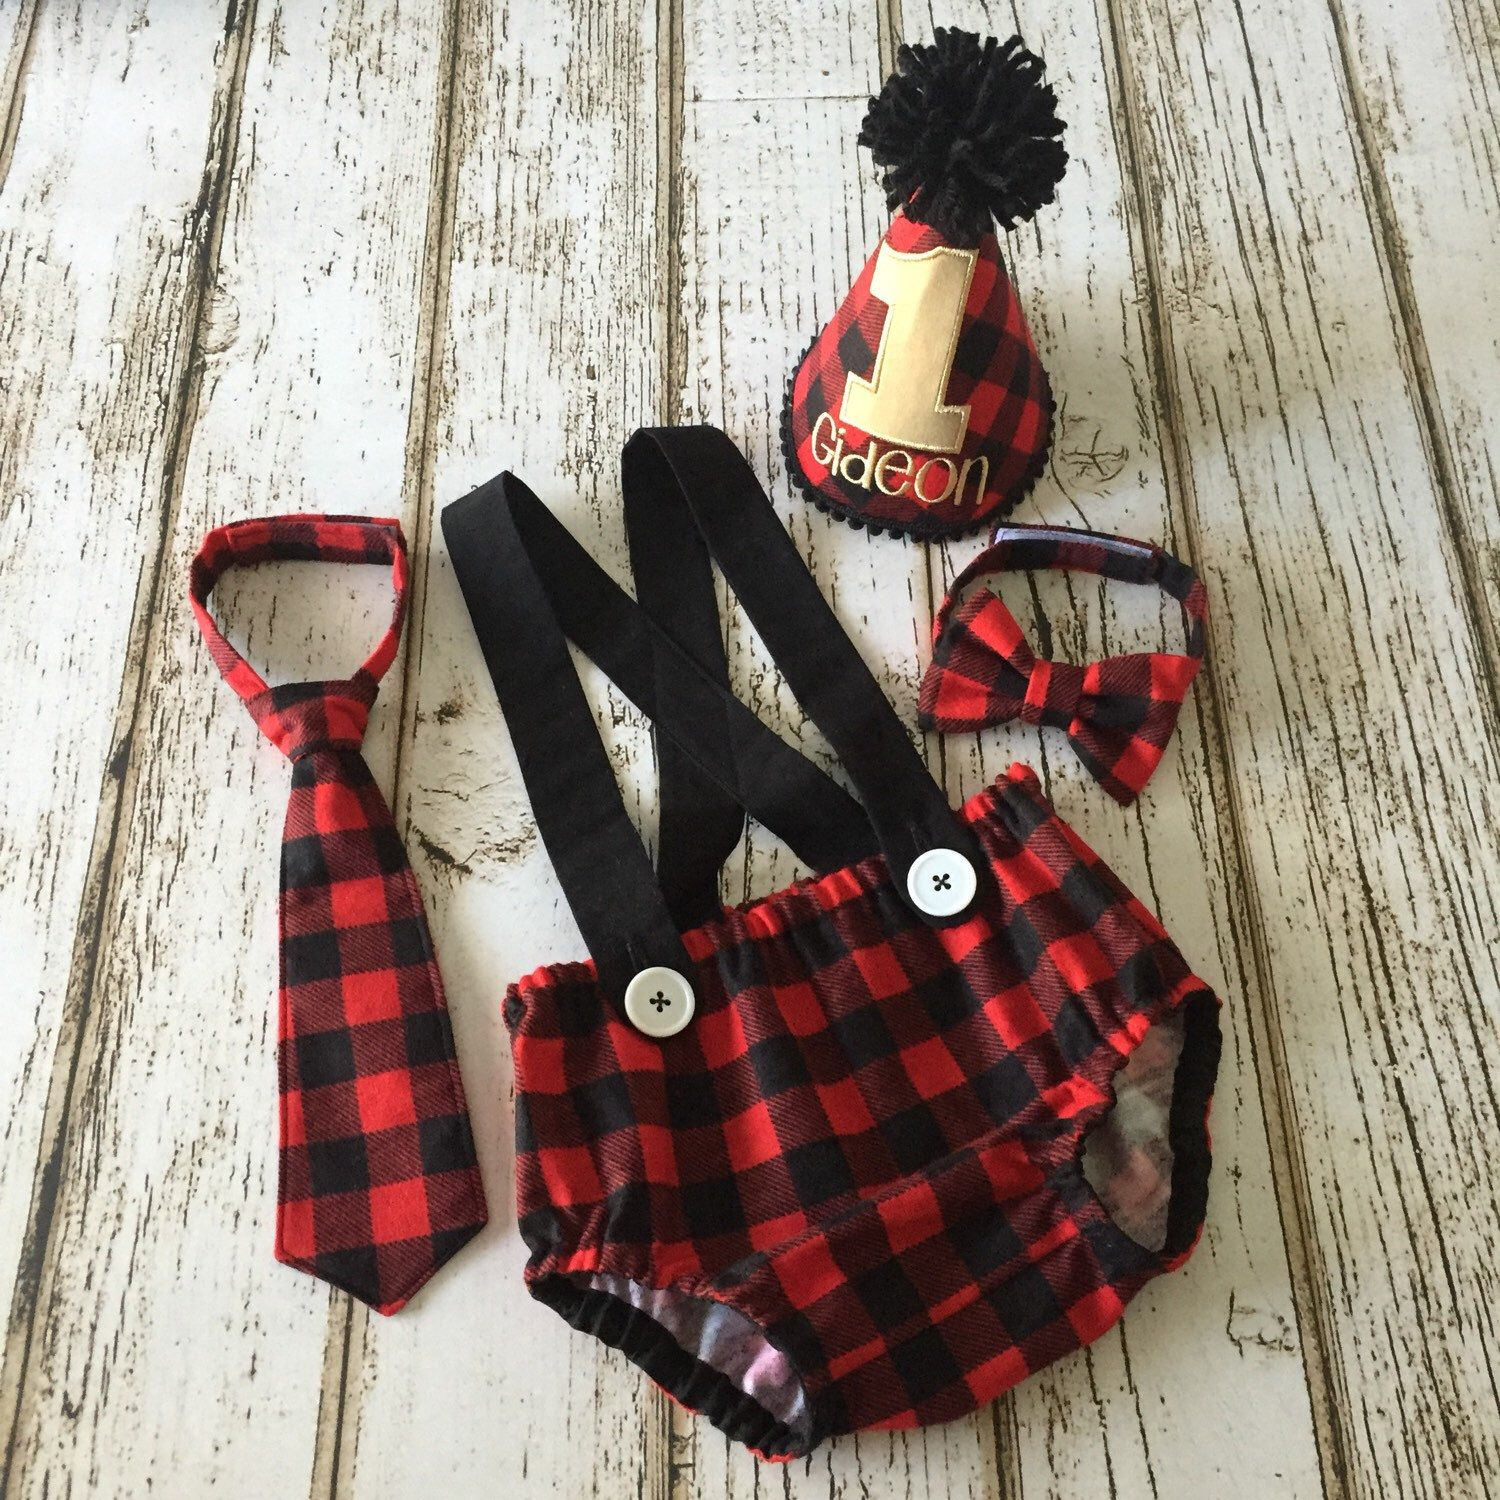 Flannel shirt birthday cake  Red and Black Buffalo Flannel Lumberjack First Birthday Boy Cake